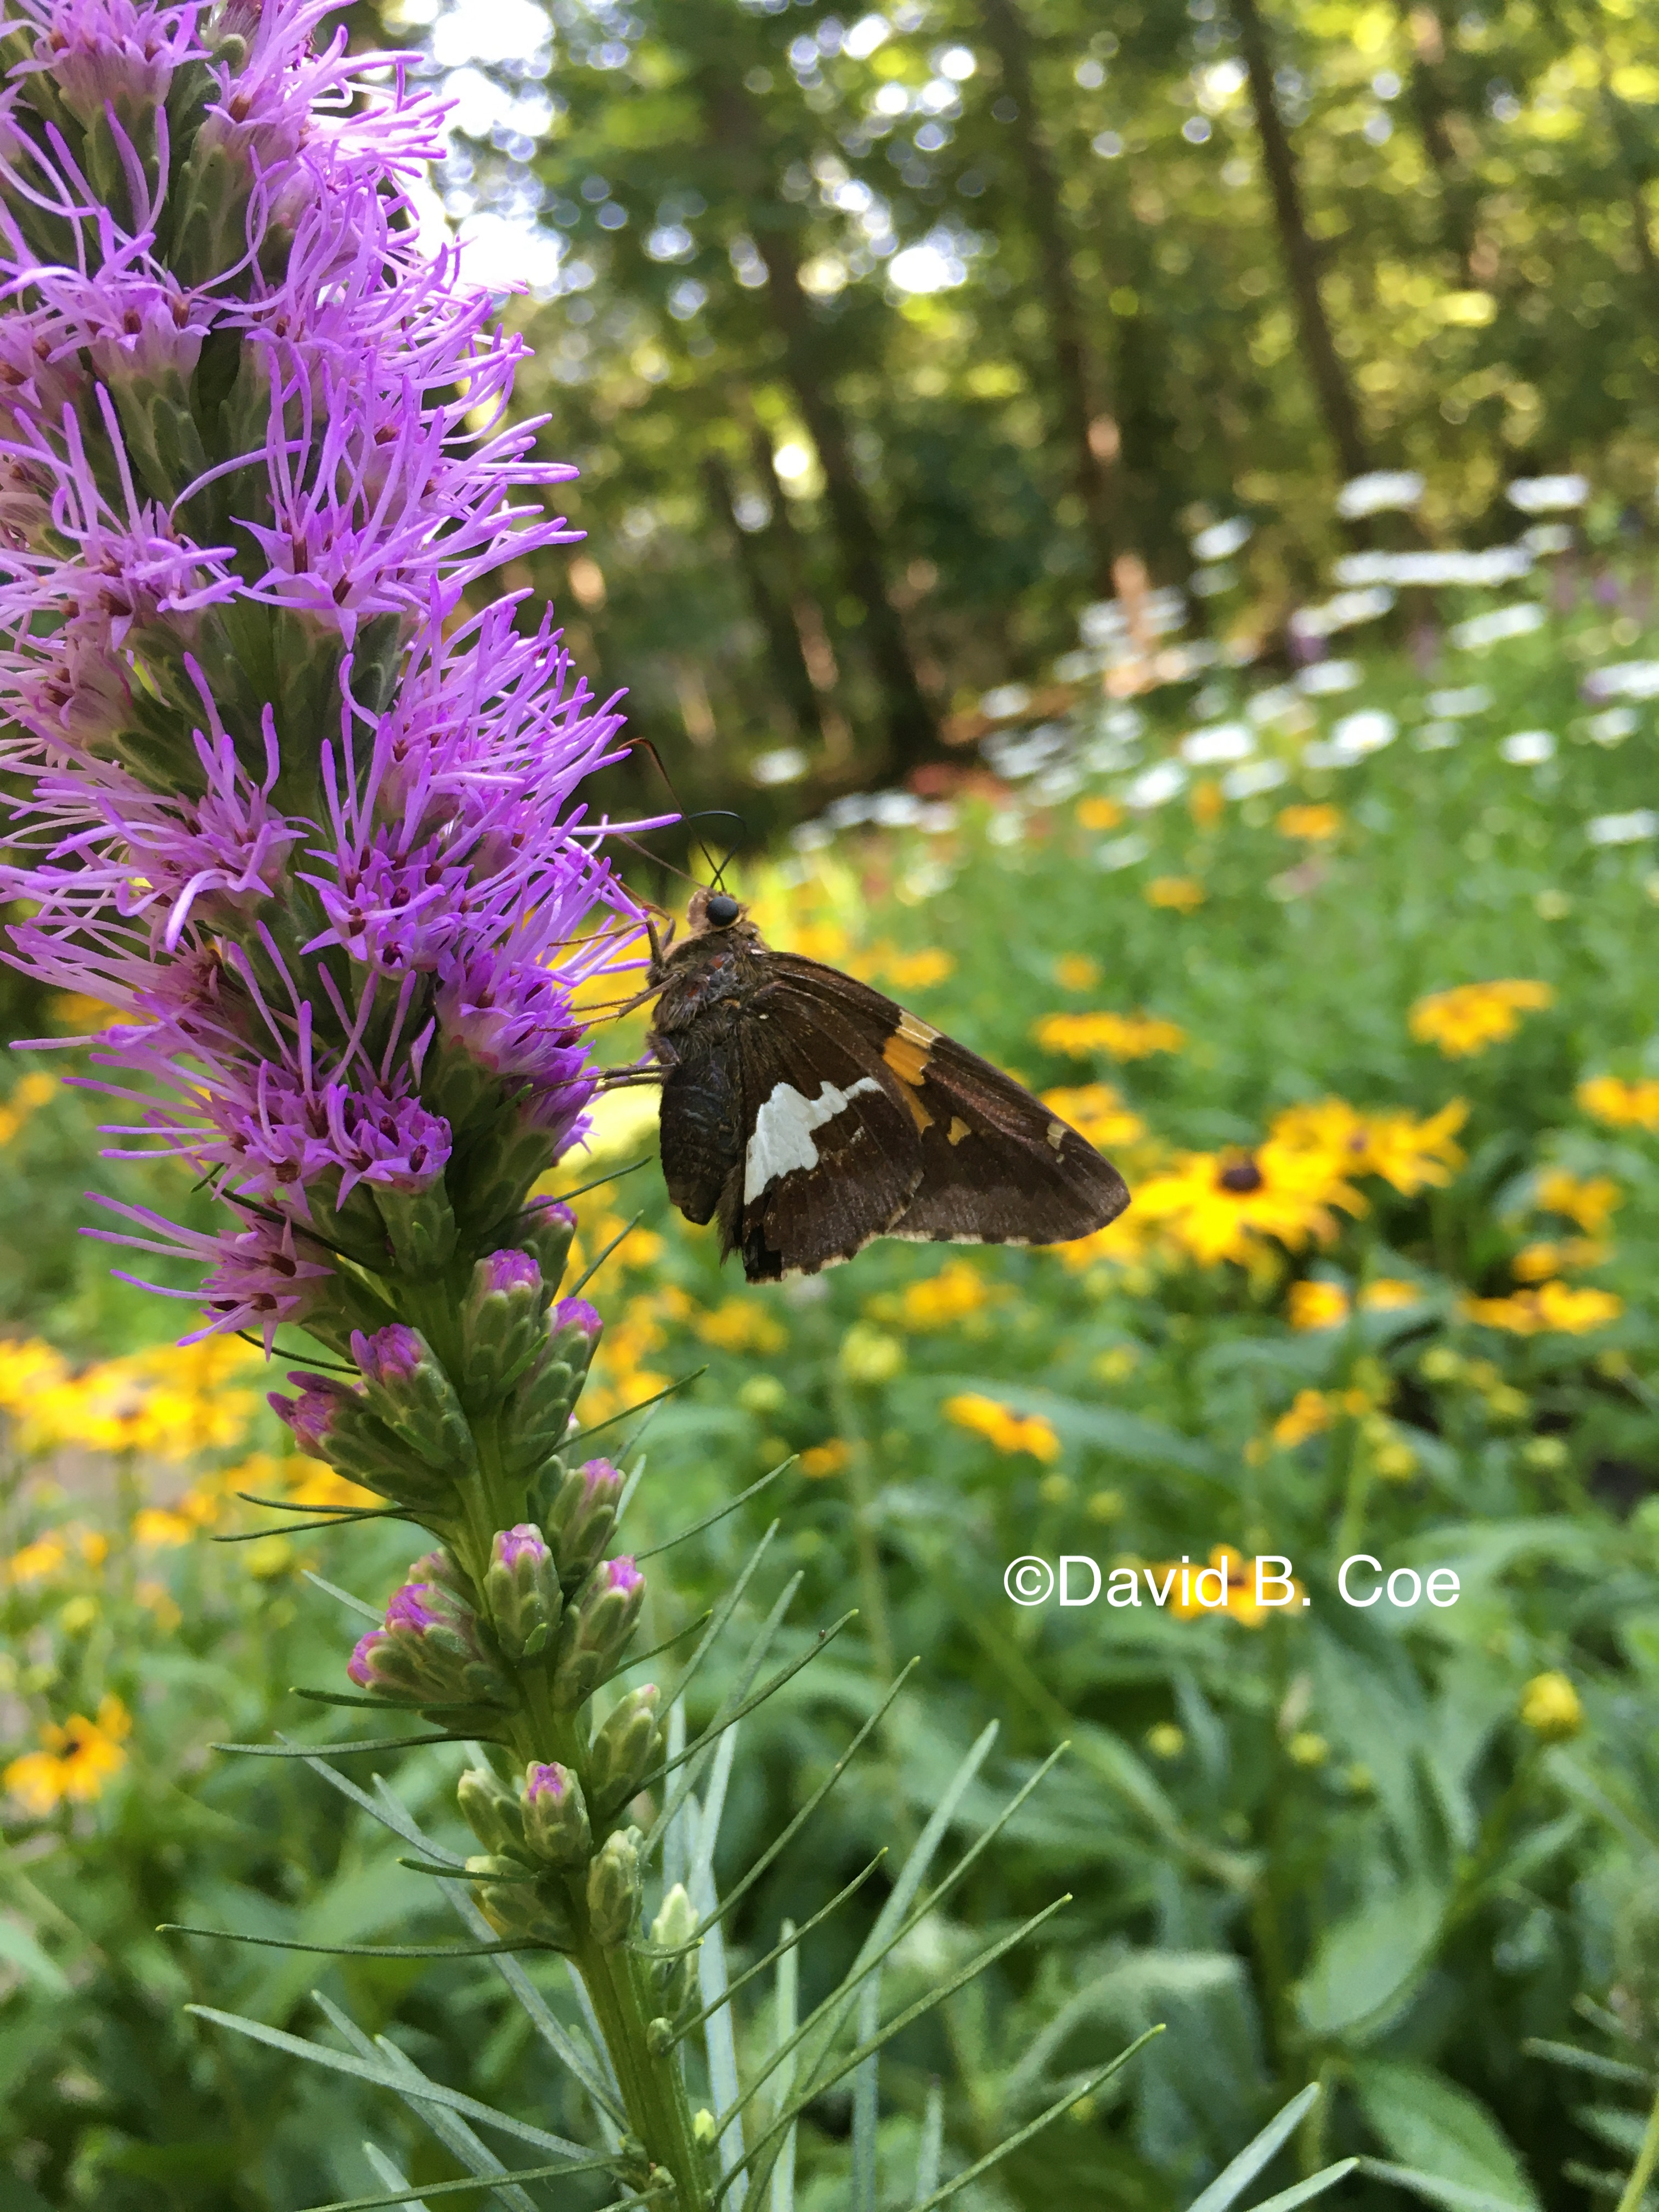 Silver-spotted Skipper on Gayfeather, by David B. Coe